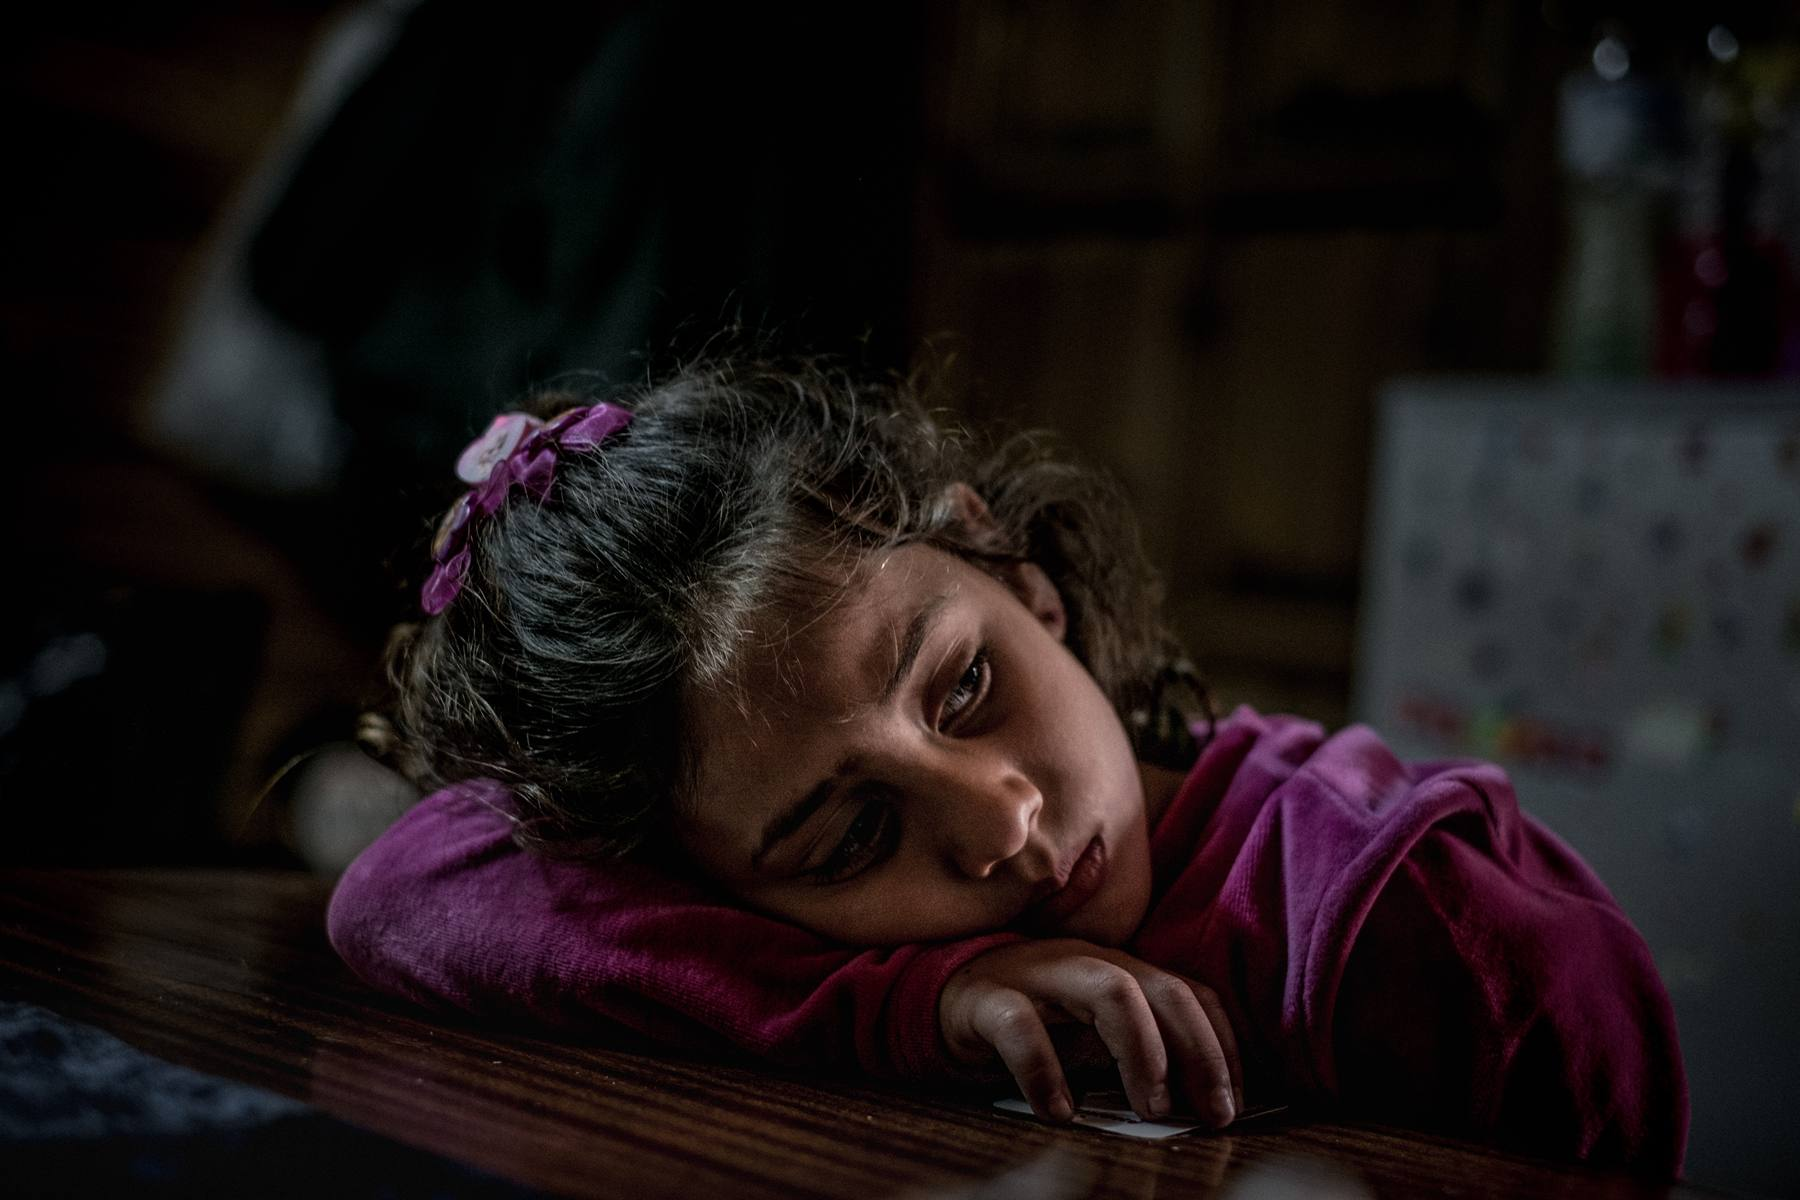 A refugee child in Greece March 14, 2017 (UNICEF)